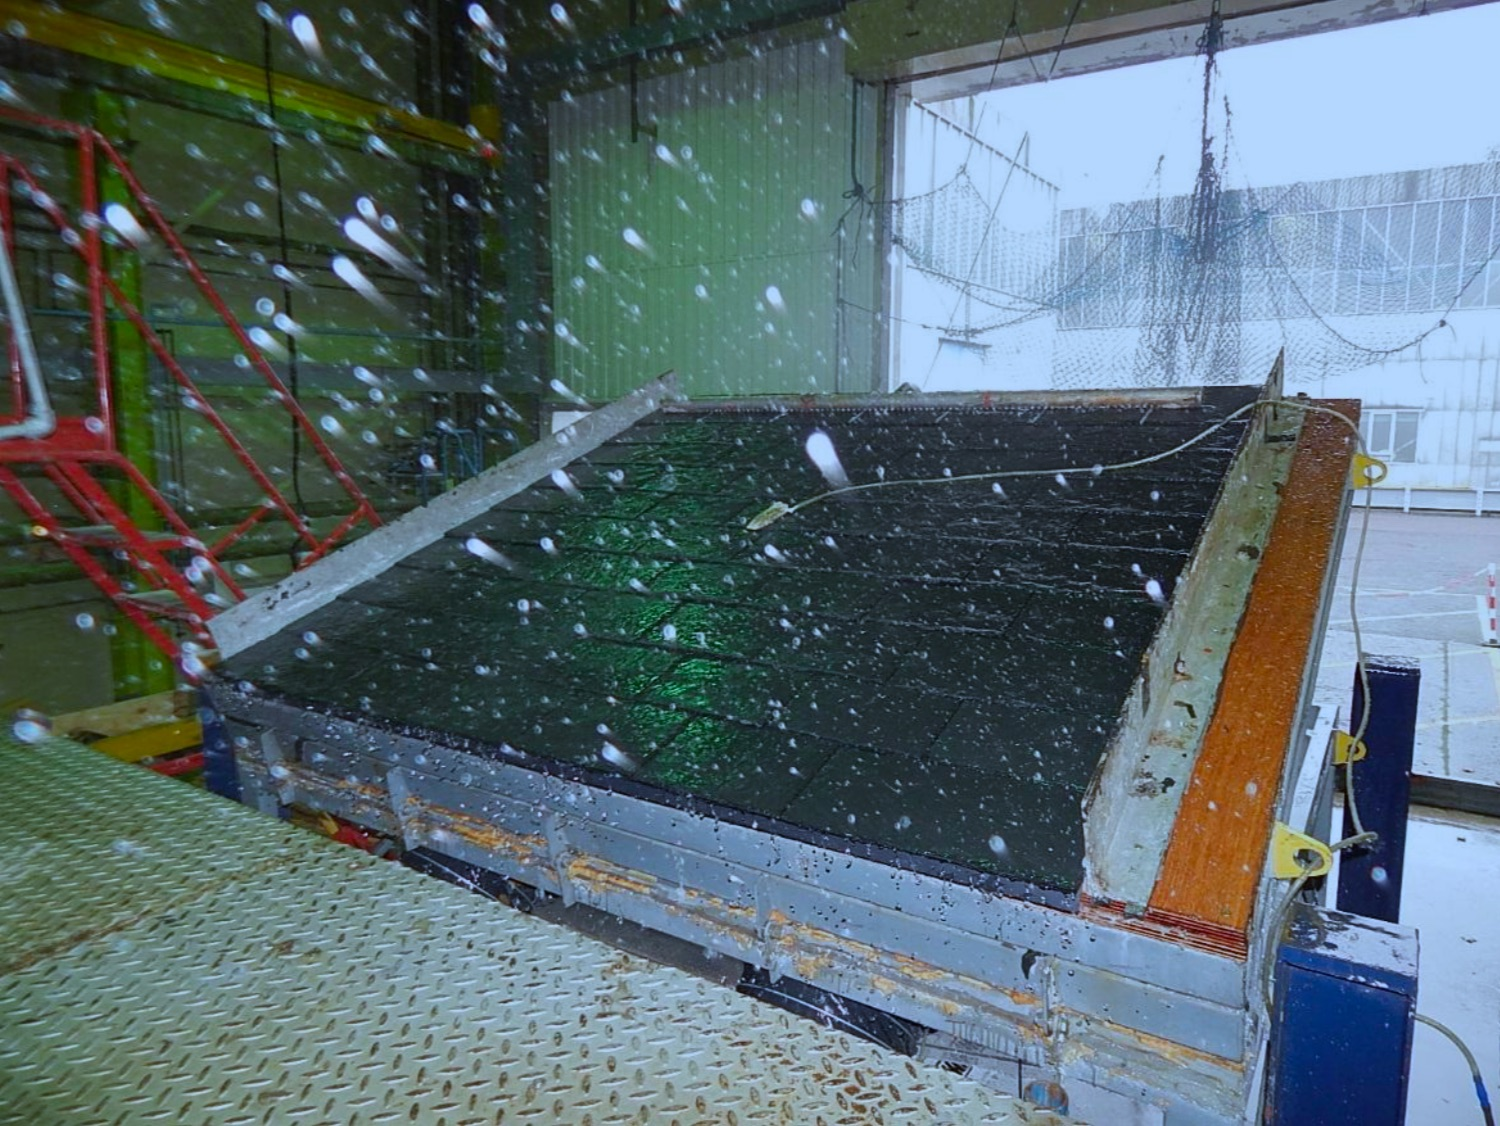 Low Pitch Slate Roof: Test Rig in BRE Tunnel